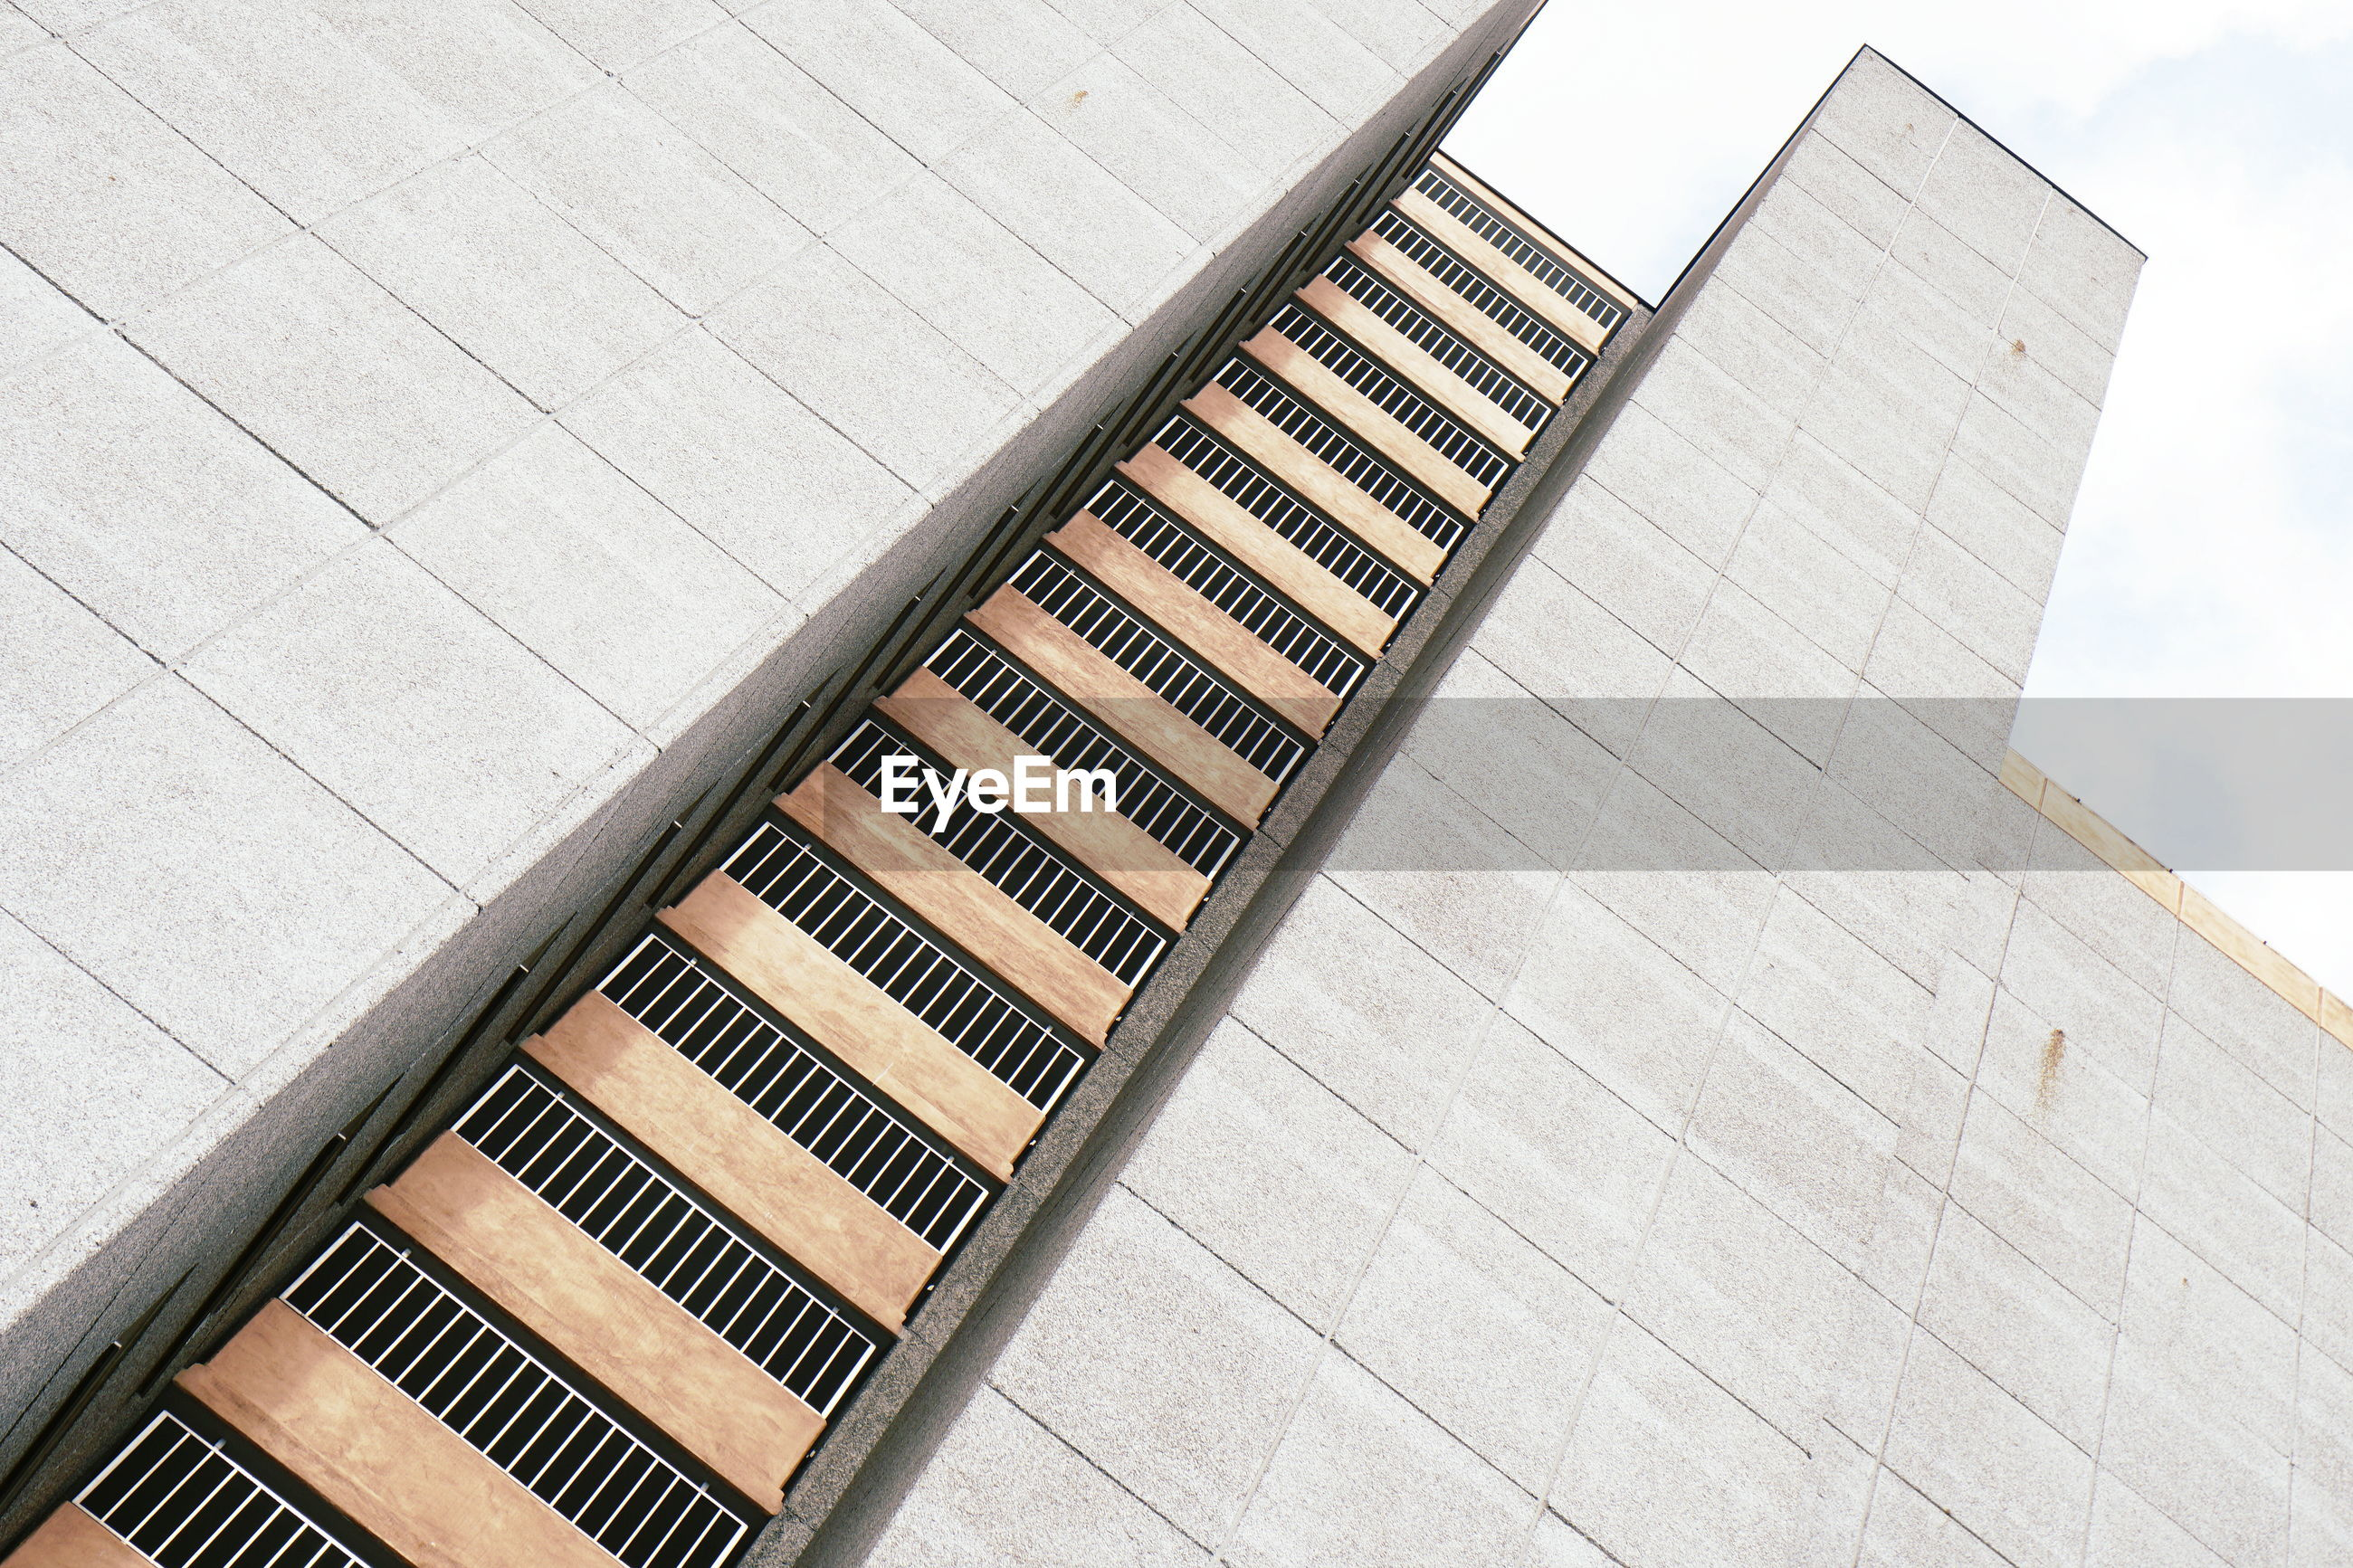 HIGH ANGLE VIEW OF STAIRCASE ON BUILDING